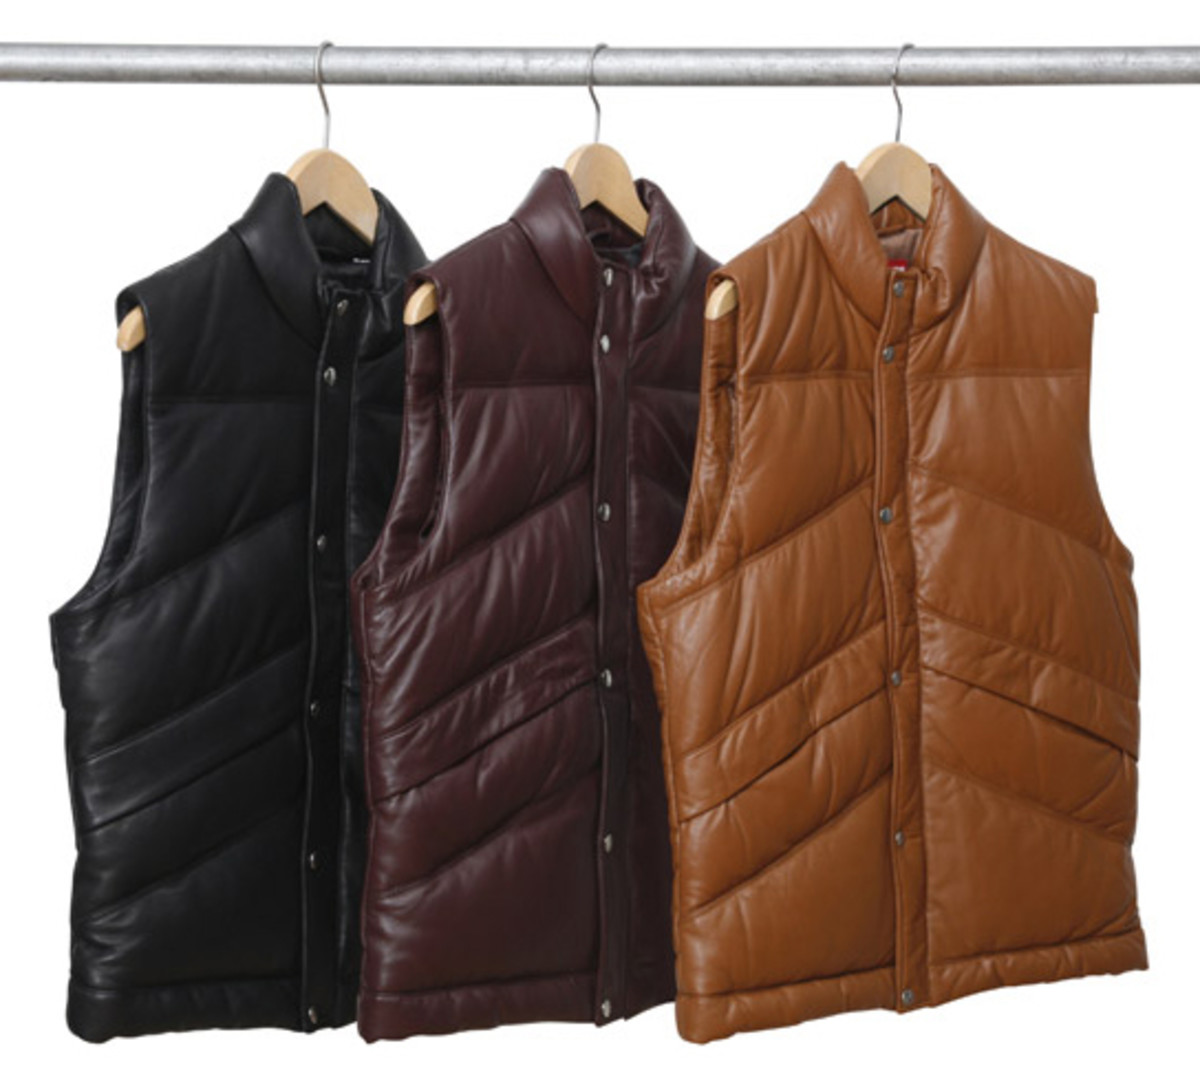 Supreme - Fall/Winter 2009 Collection - Leather Vest